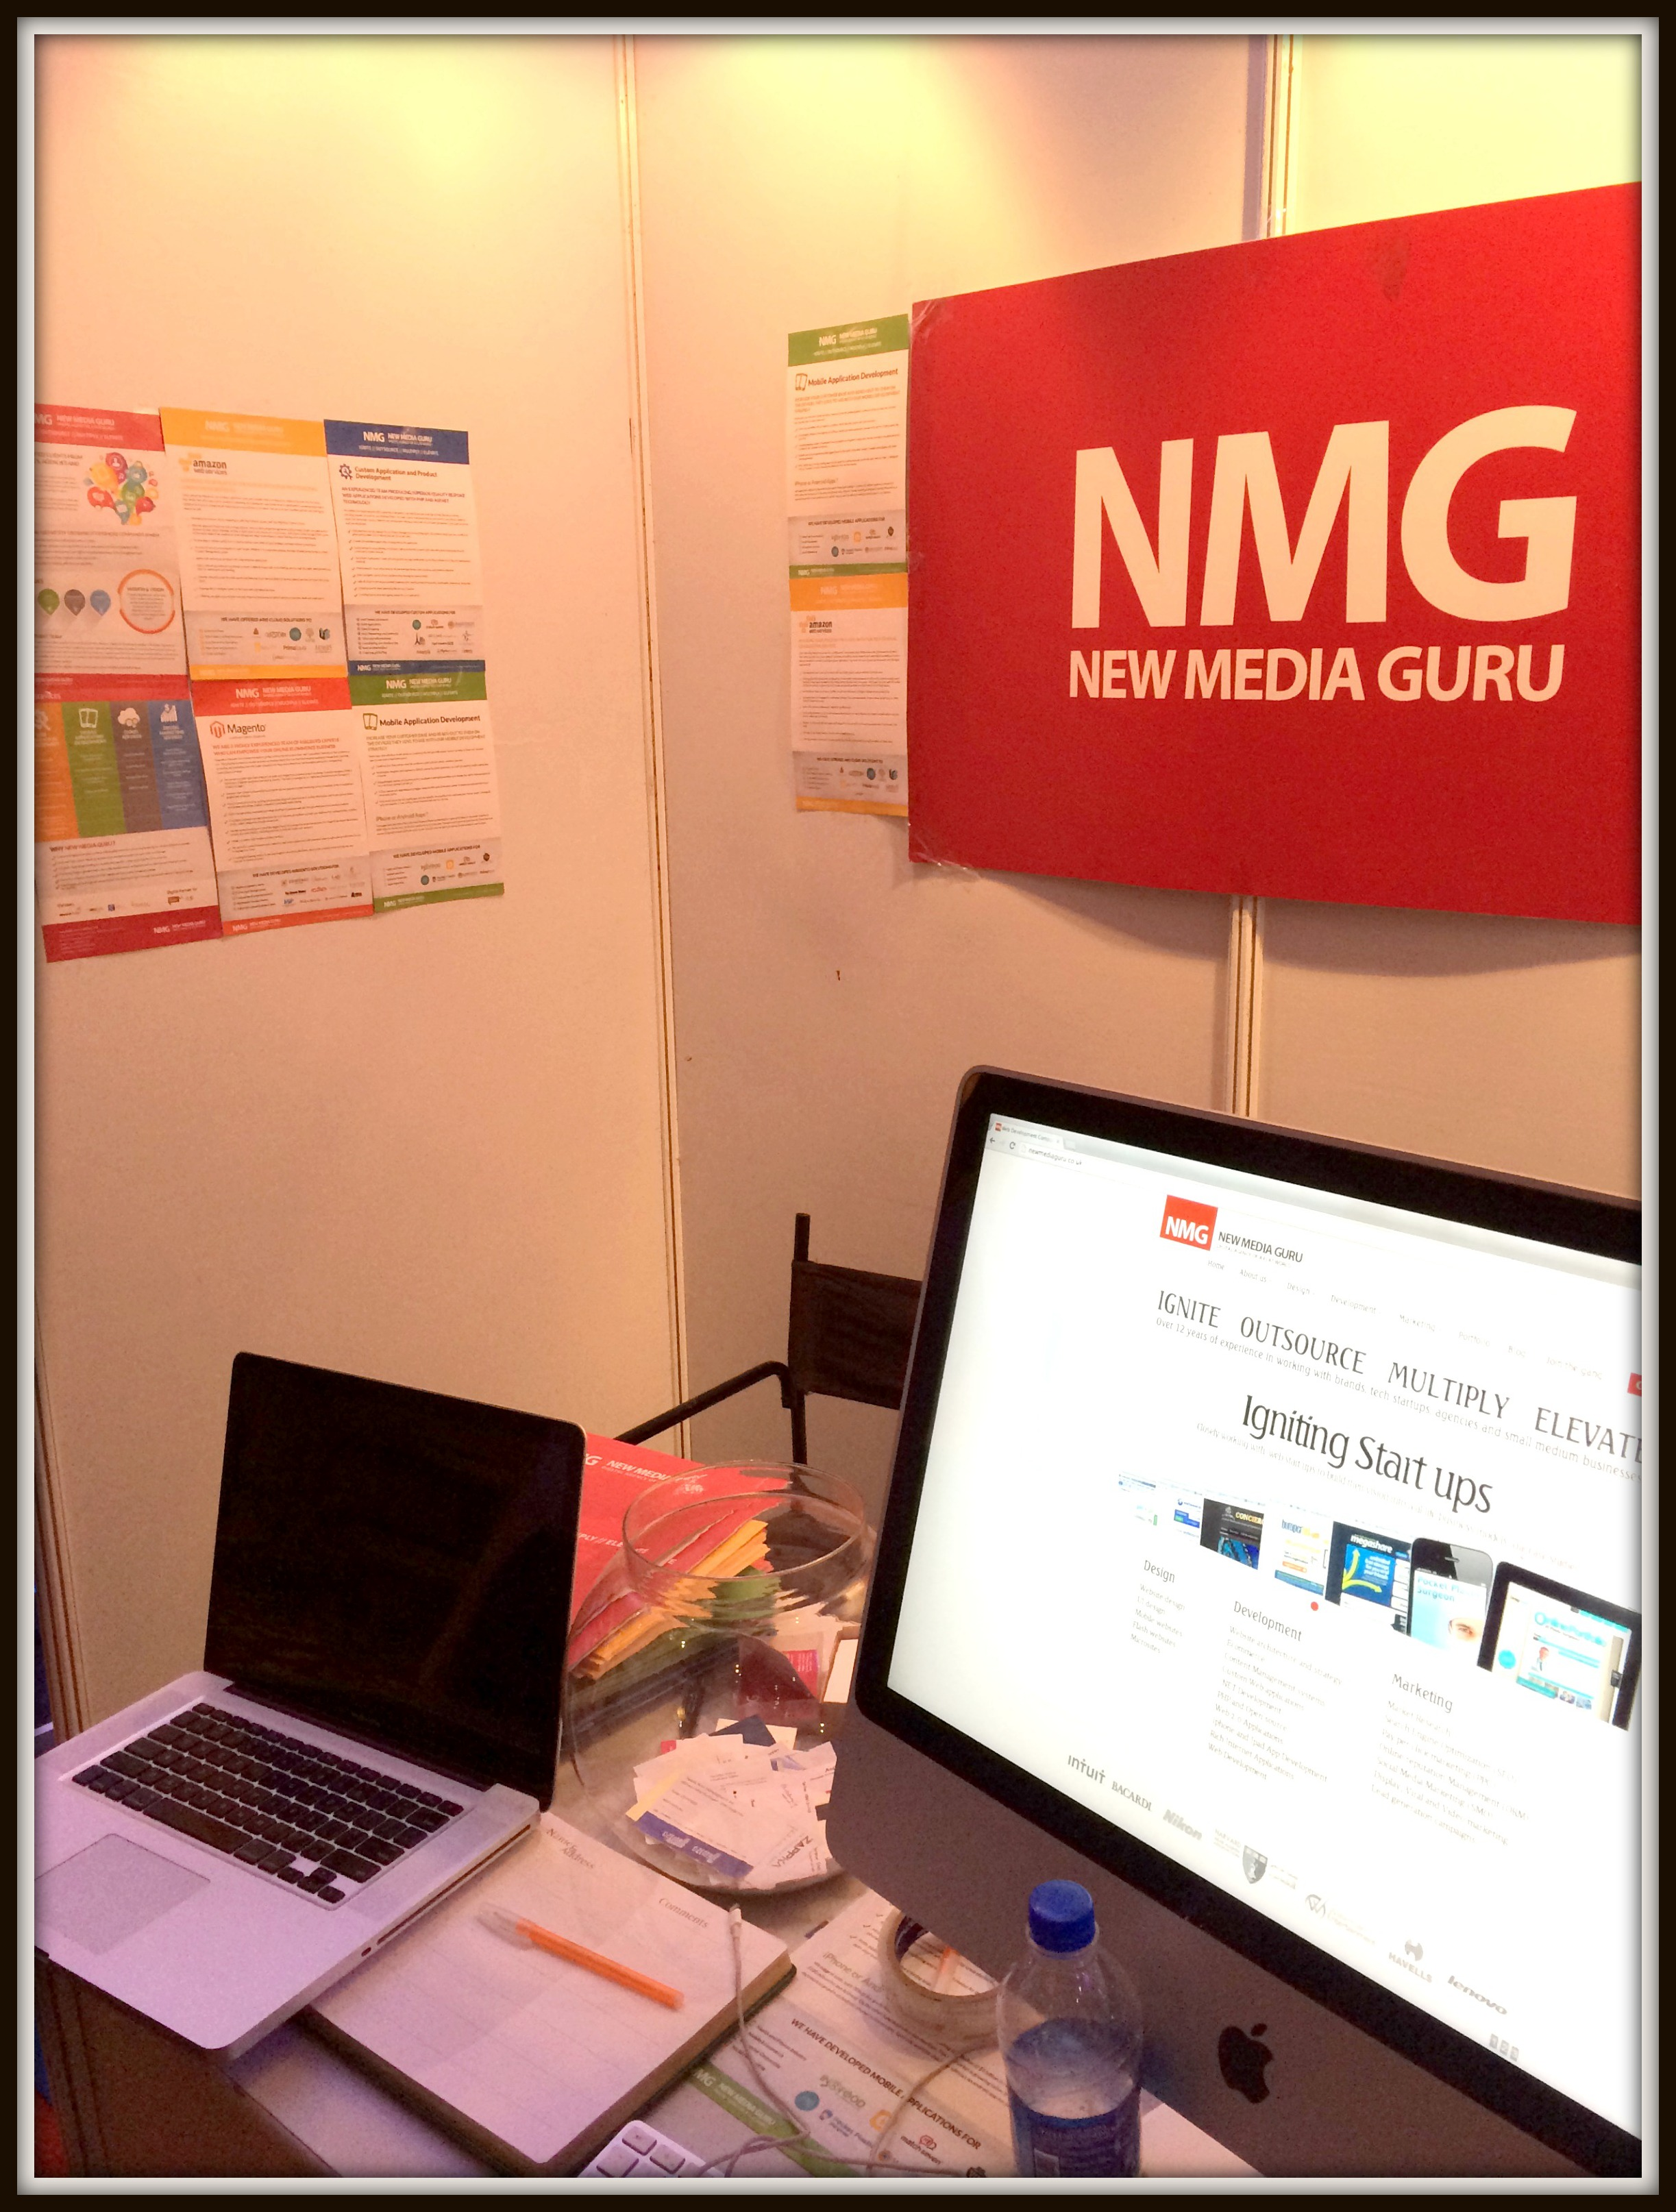 NASSCOM Product Conclave - NMG